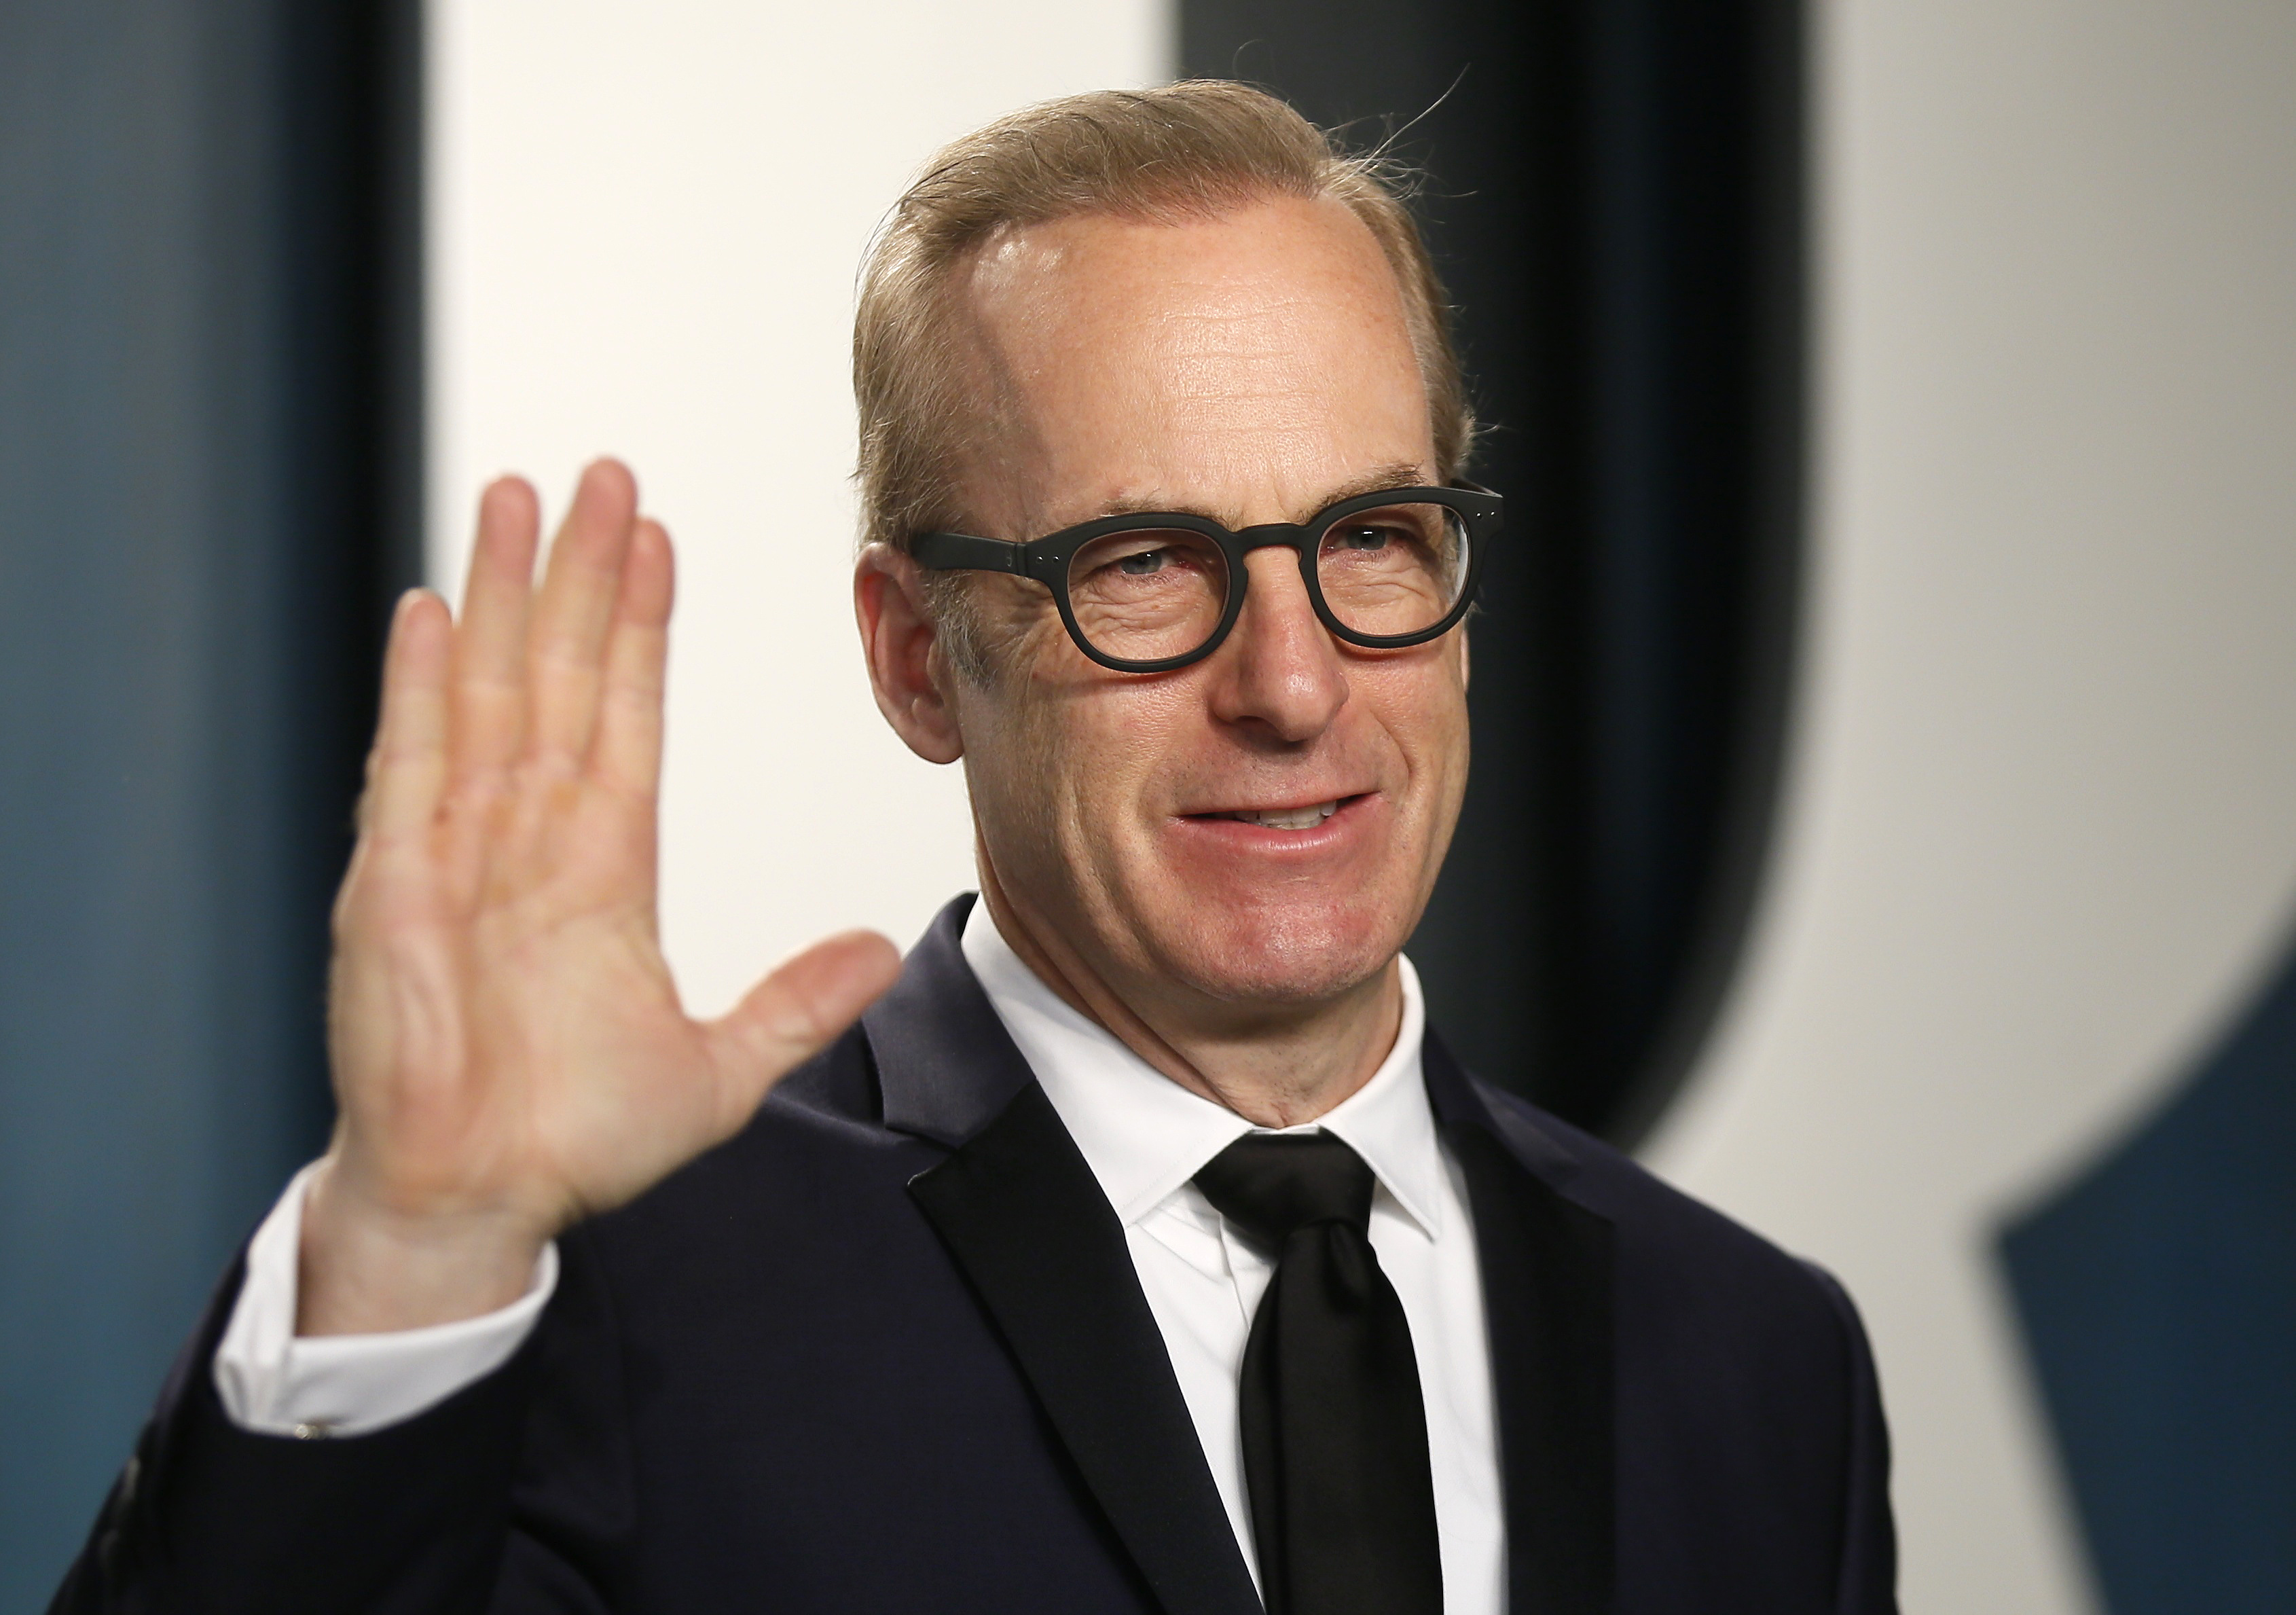 Bob Odenkirk attends the Vanity Fair Oscar party in Beverly Hills during the 92nd Academy Awards, in Los Angeles, California, U.S., February 9, 2020.    REUTERS/Danny Moloshok